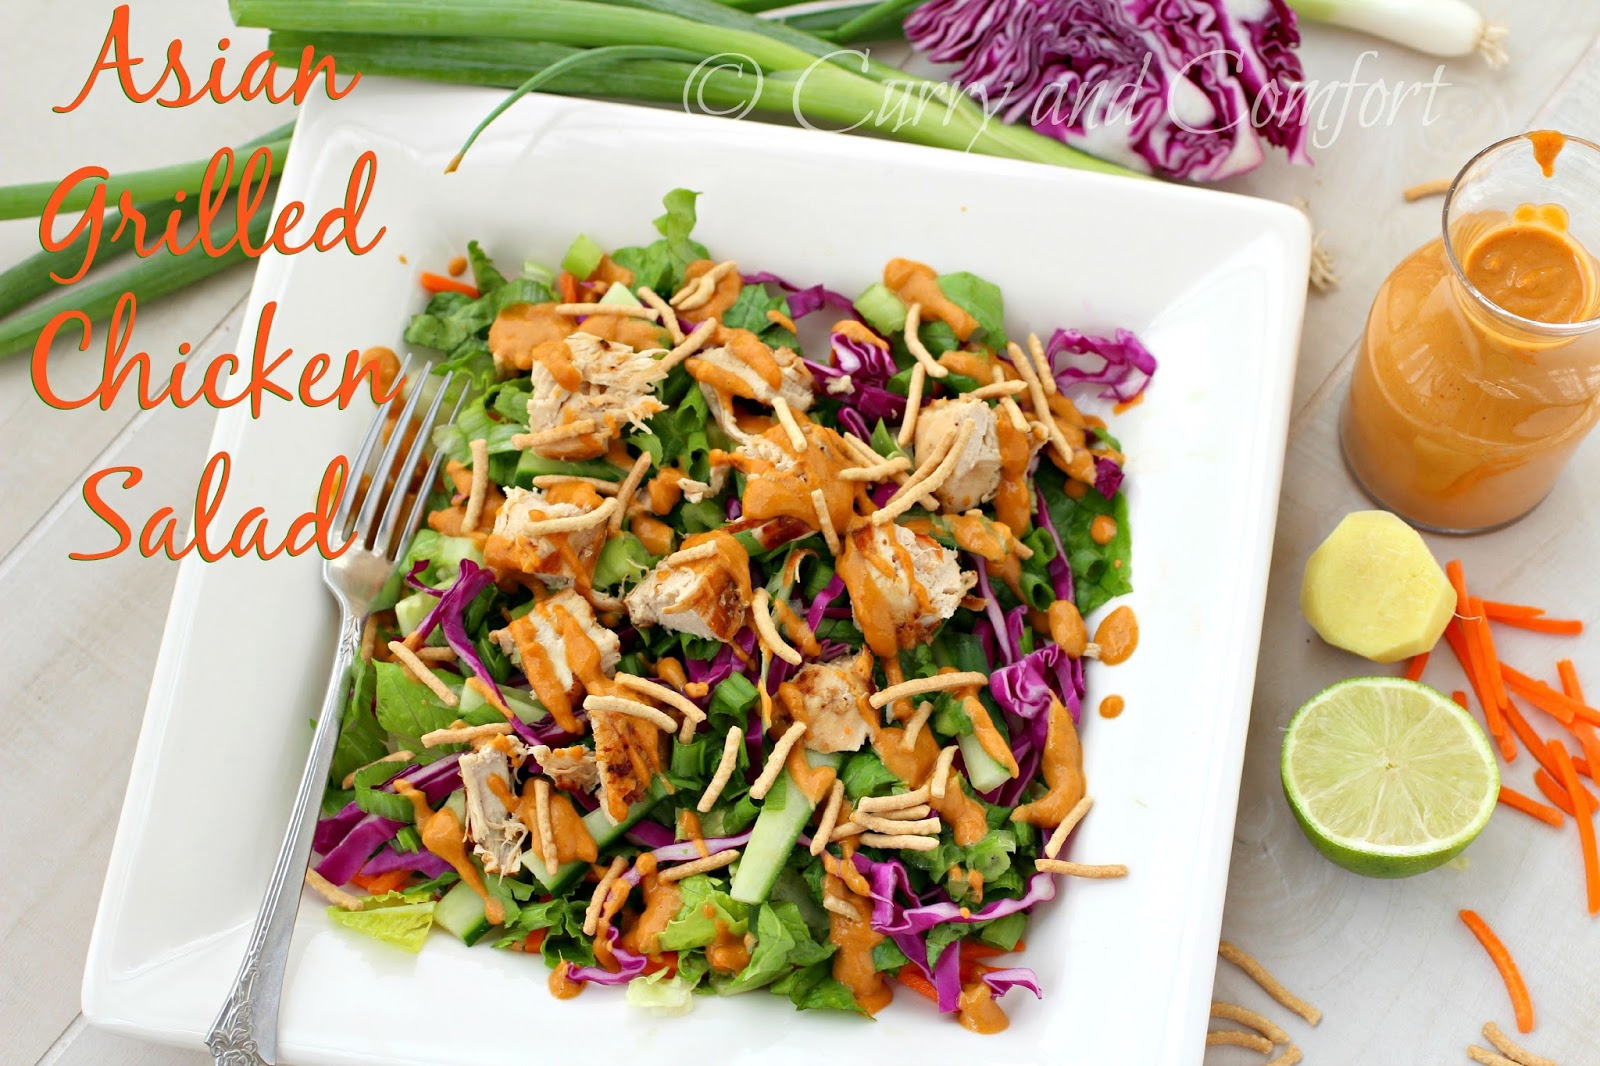 Kitchen Simmer: Asian Grilled Chicken Salad with Spicy Peanut Dressing